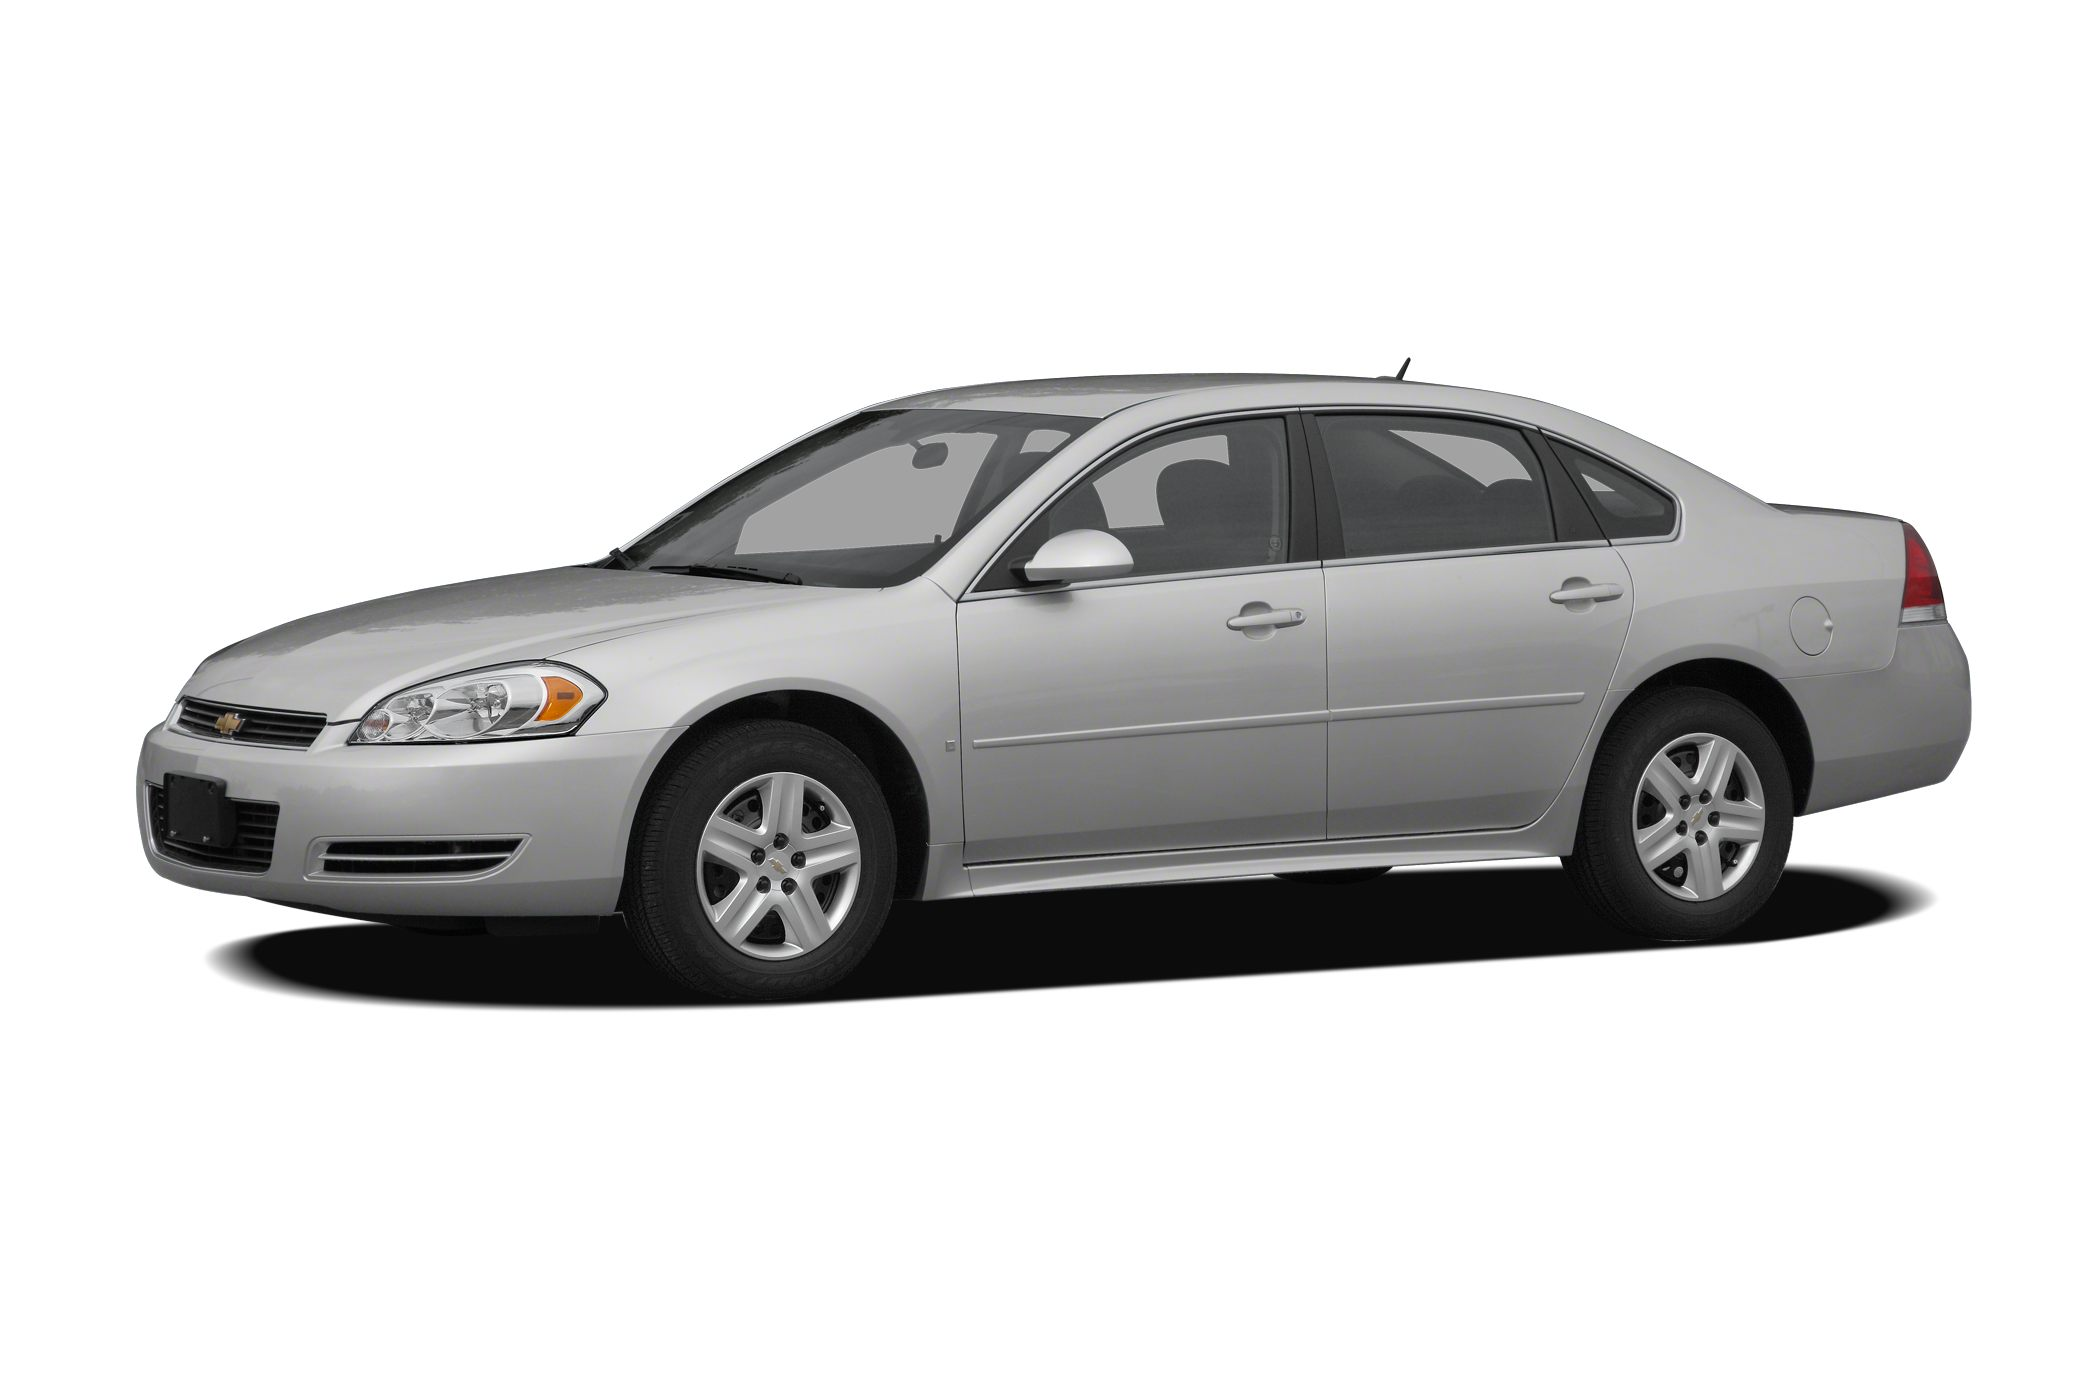 2010 Chevrolet Impala LT Sedan for sale in Elkins for $11,990 with 52,053 miles